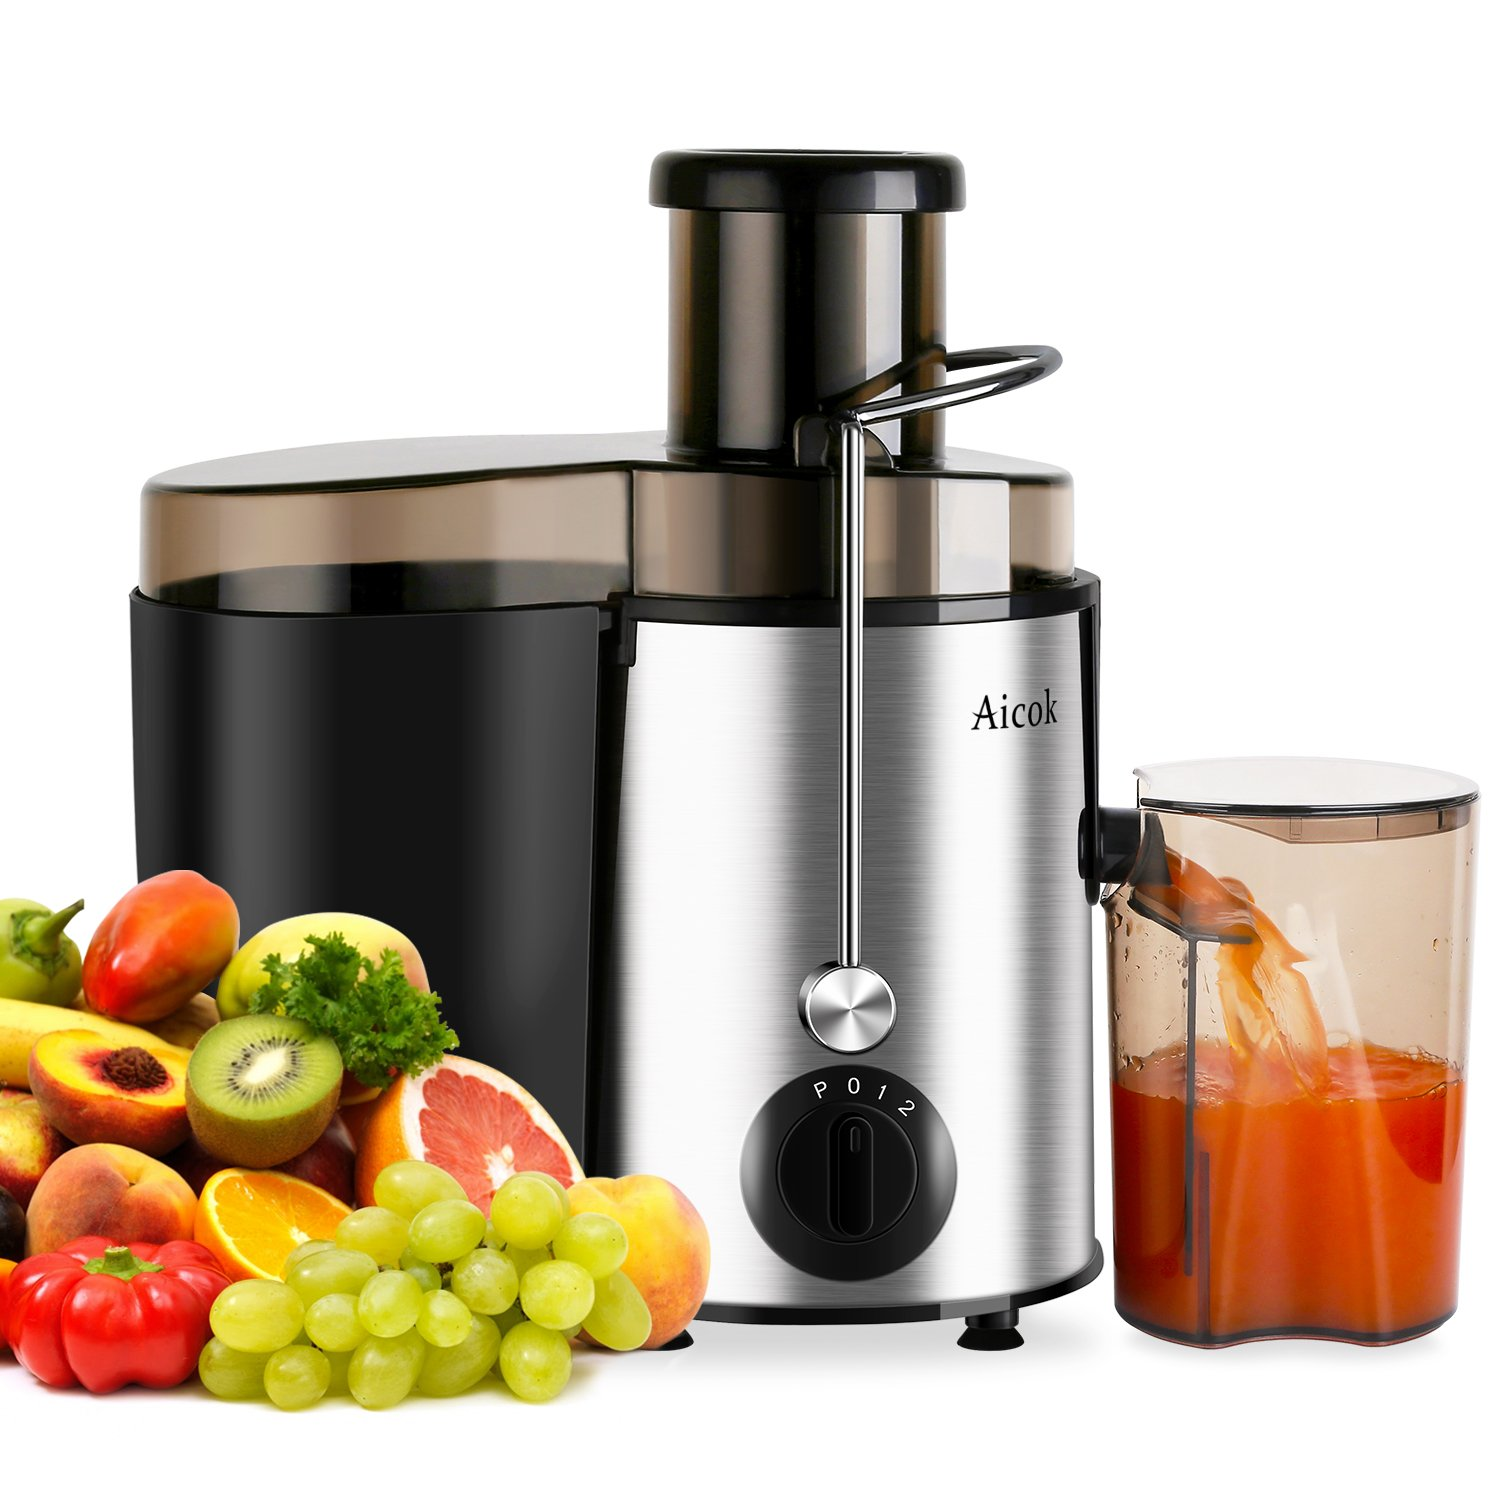 Best Slow Masticating Juicer 2018 : Best Masticating Juicer 2018, Reviews and Buying Guide